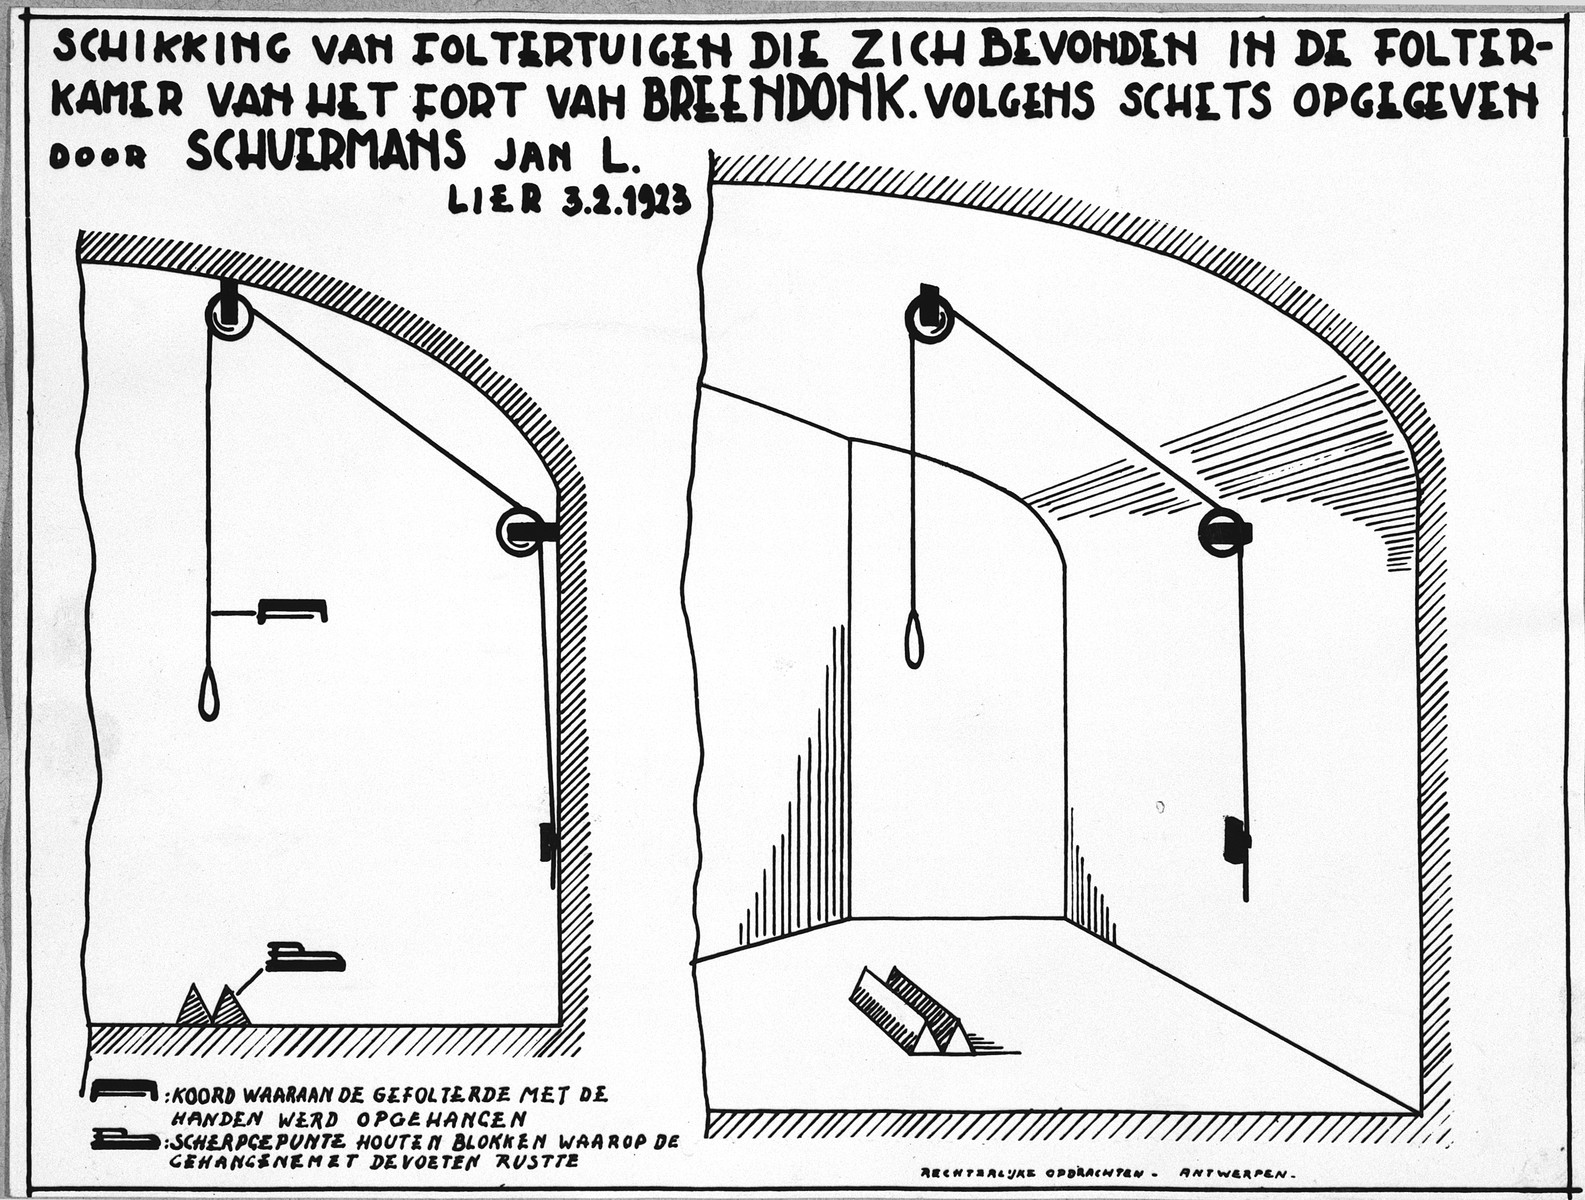 Plan showing the arrangements of torture devices in Breendonck.